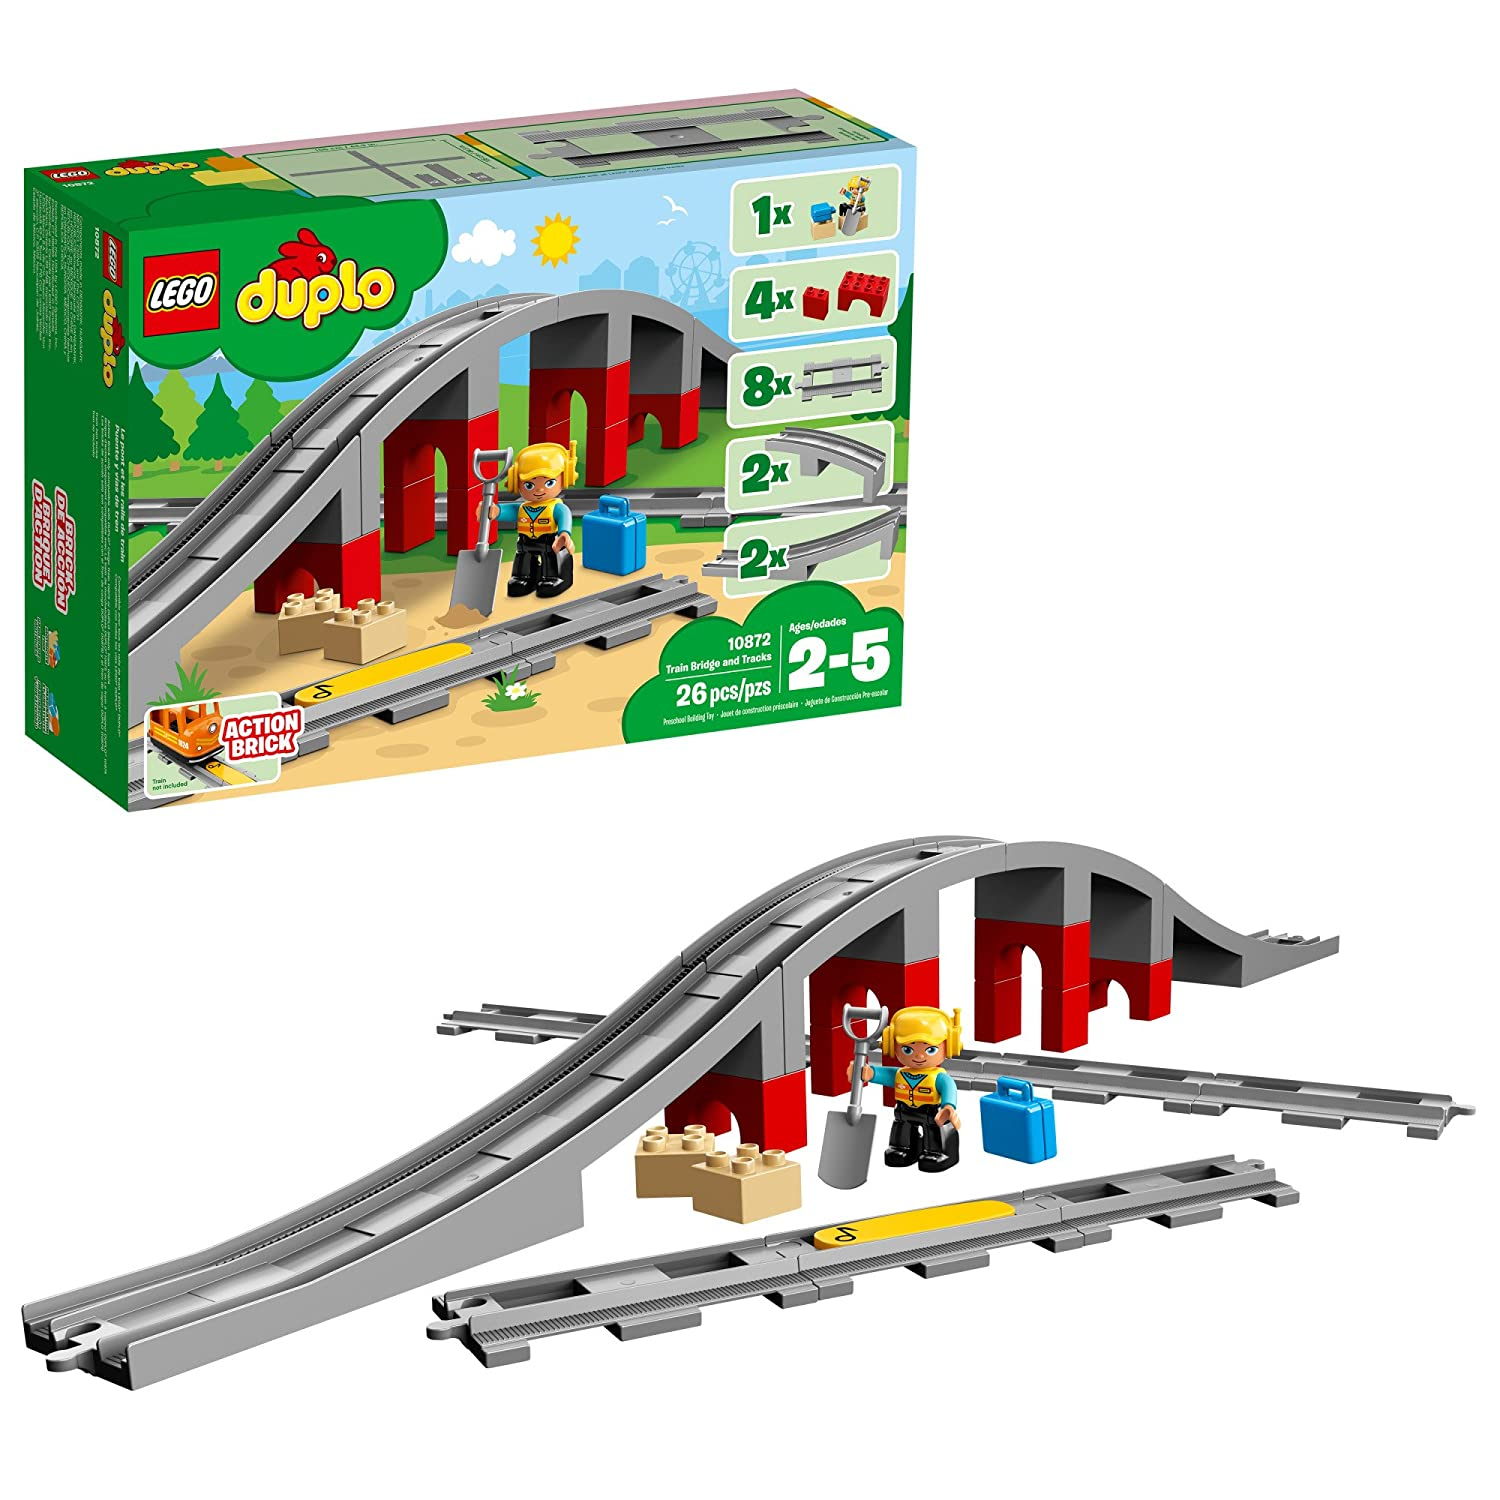 LEGO Duplo Train Bridge and Tracks 10872 Building Blocks (26 Piece) 6213749